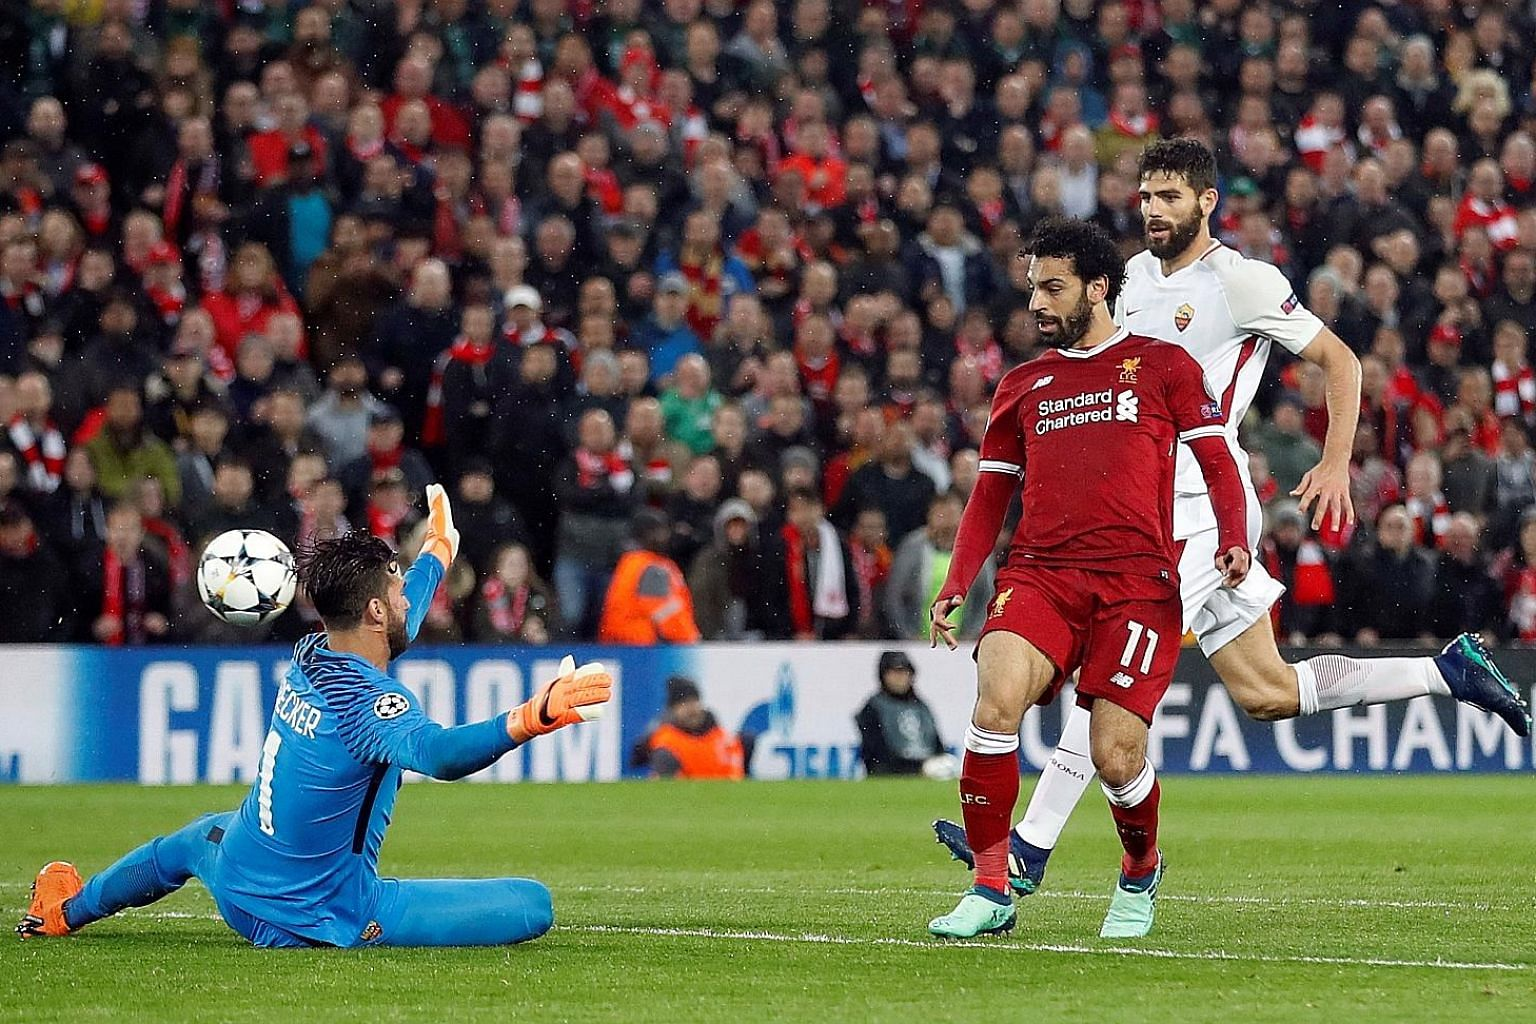 Liverpool's Mo Salah chips the ball over Roma goalkeeper Alisson Becker for the Reds' second goal in the 5-2 rout of his former club in the first leg of the Champions League semi-final.